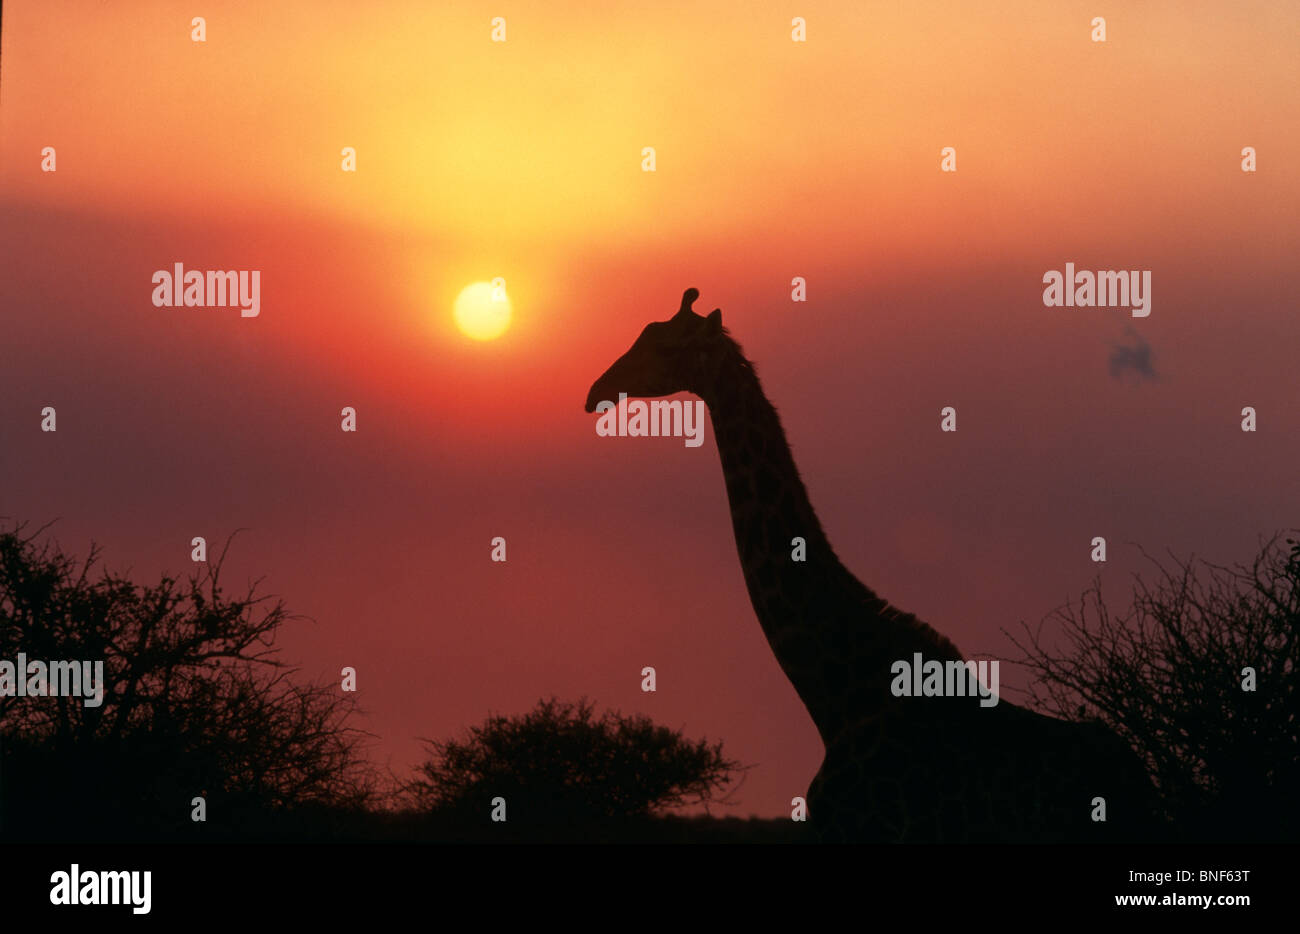 Silhouette of Giraffe (Giraffa Camelopardalis) against sunset, KwaZulu-Natal Province, South Africa - Stock Image